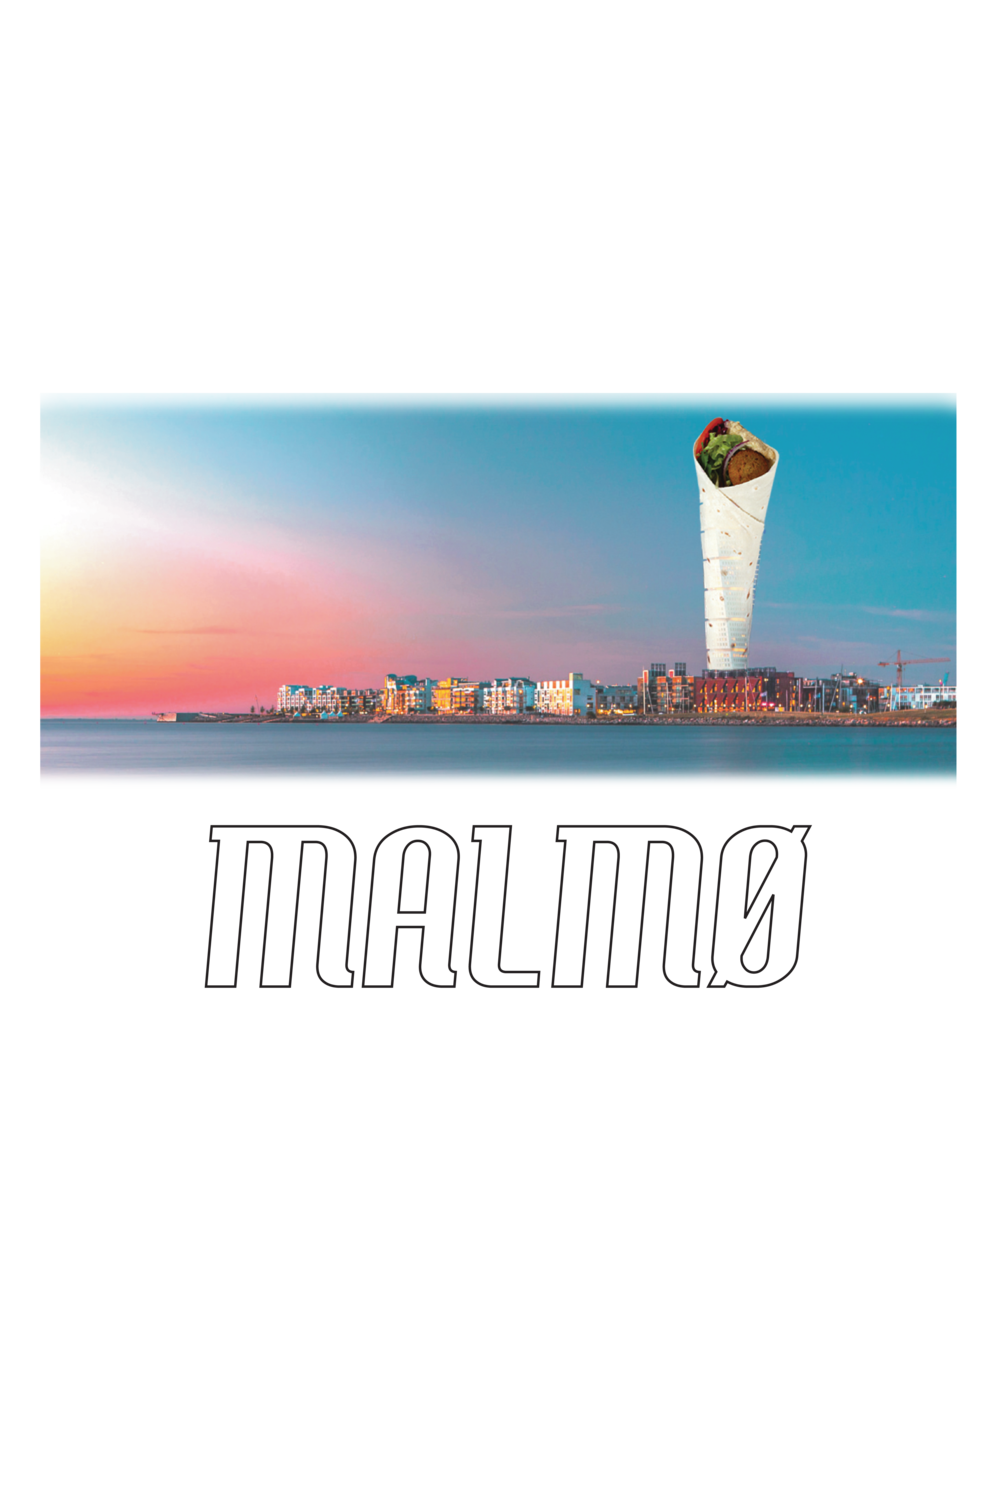 Malmø Turning Falafel Poster  €9.99–€14.99 Available in A4, A3